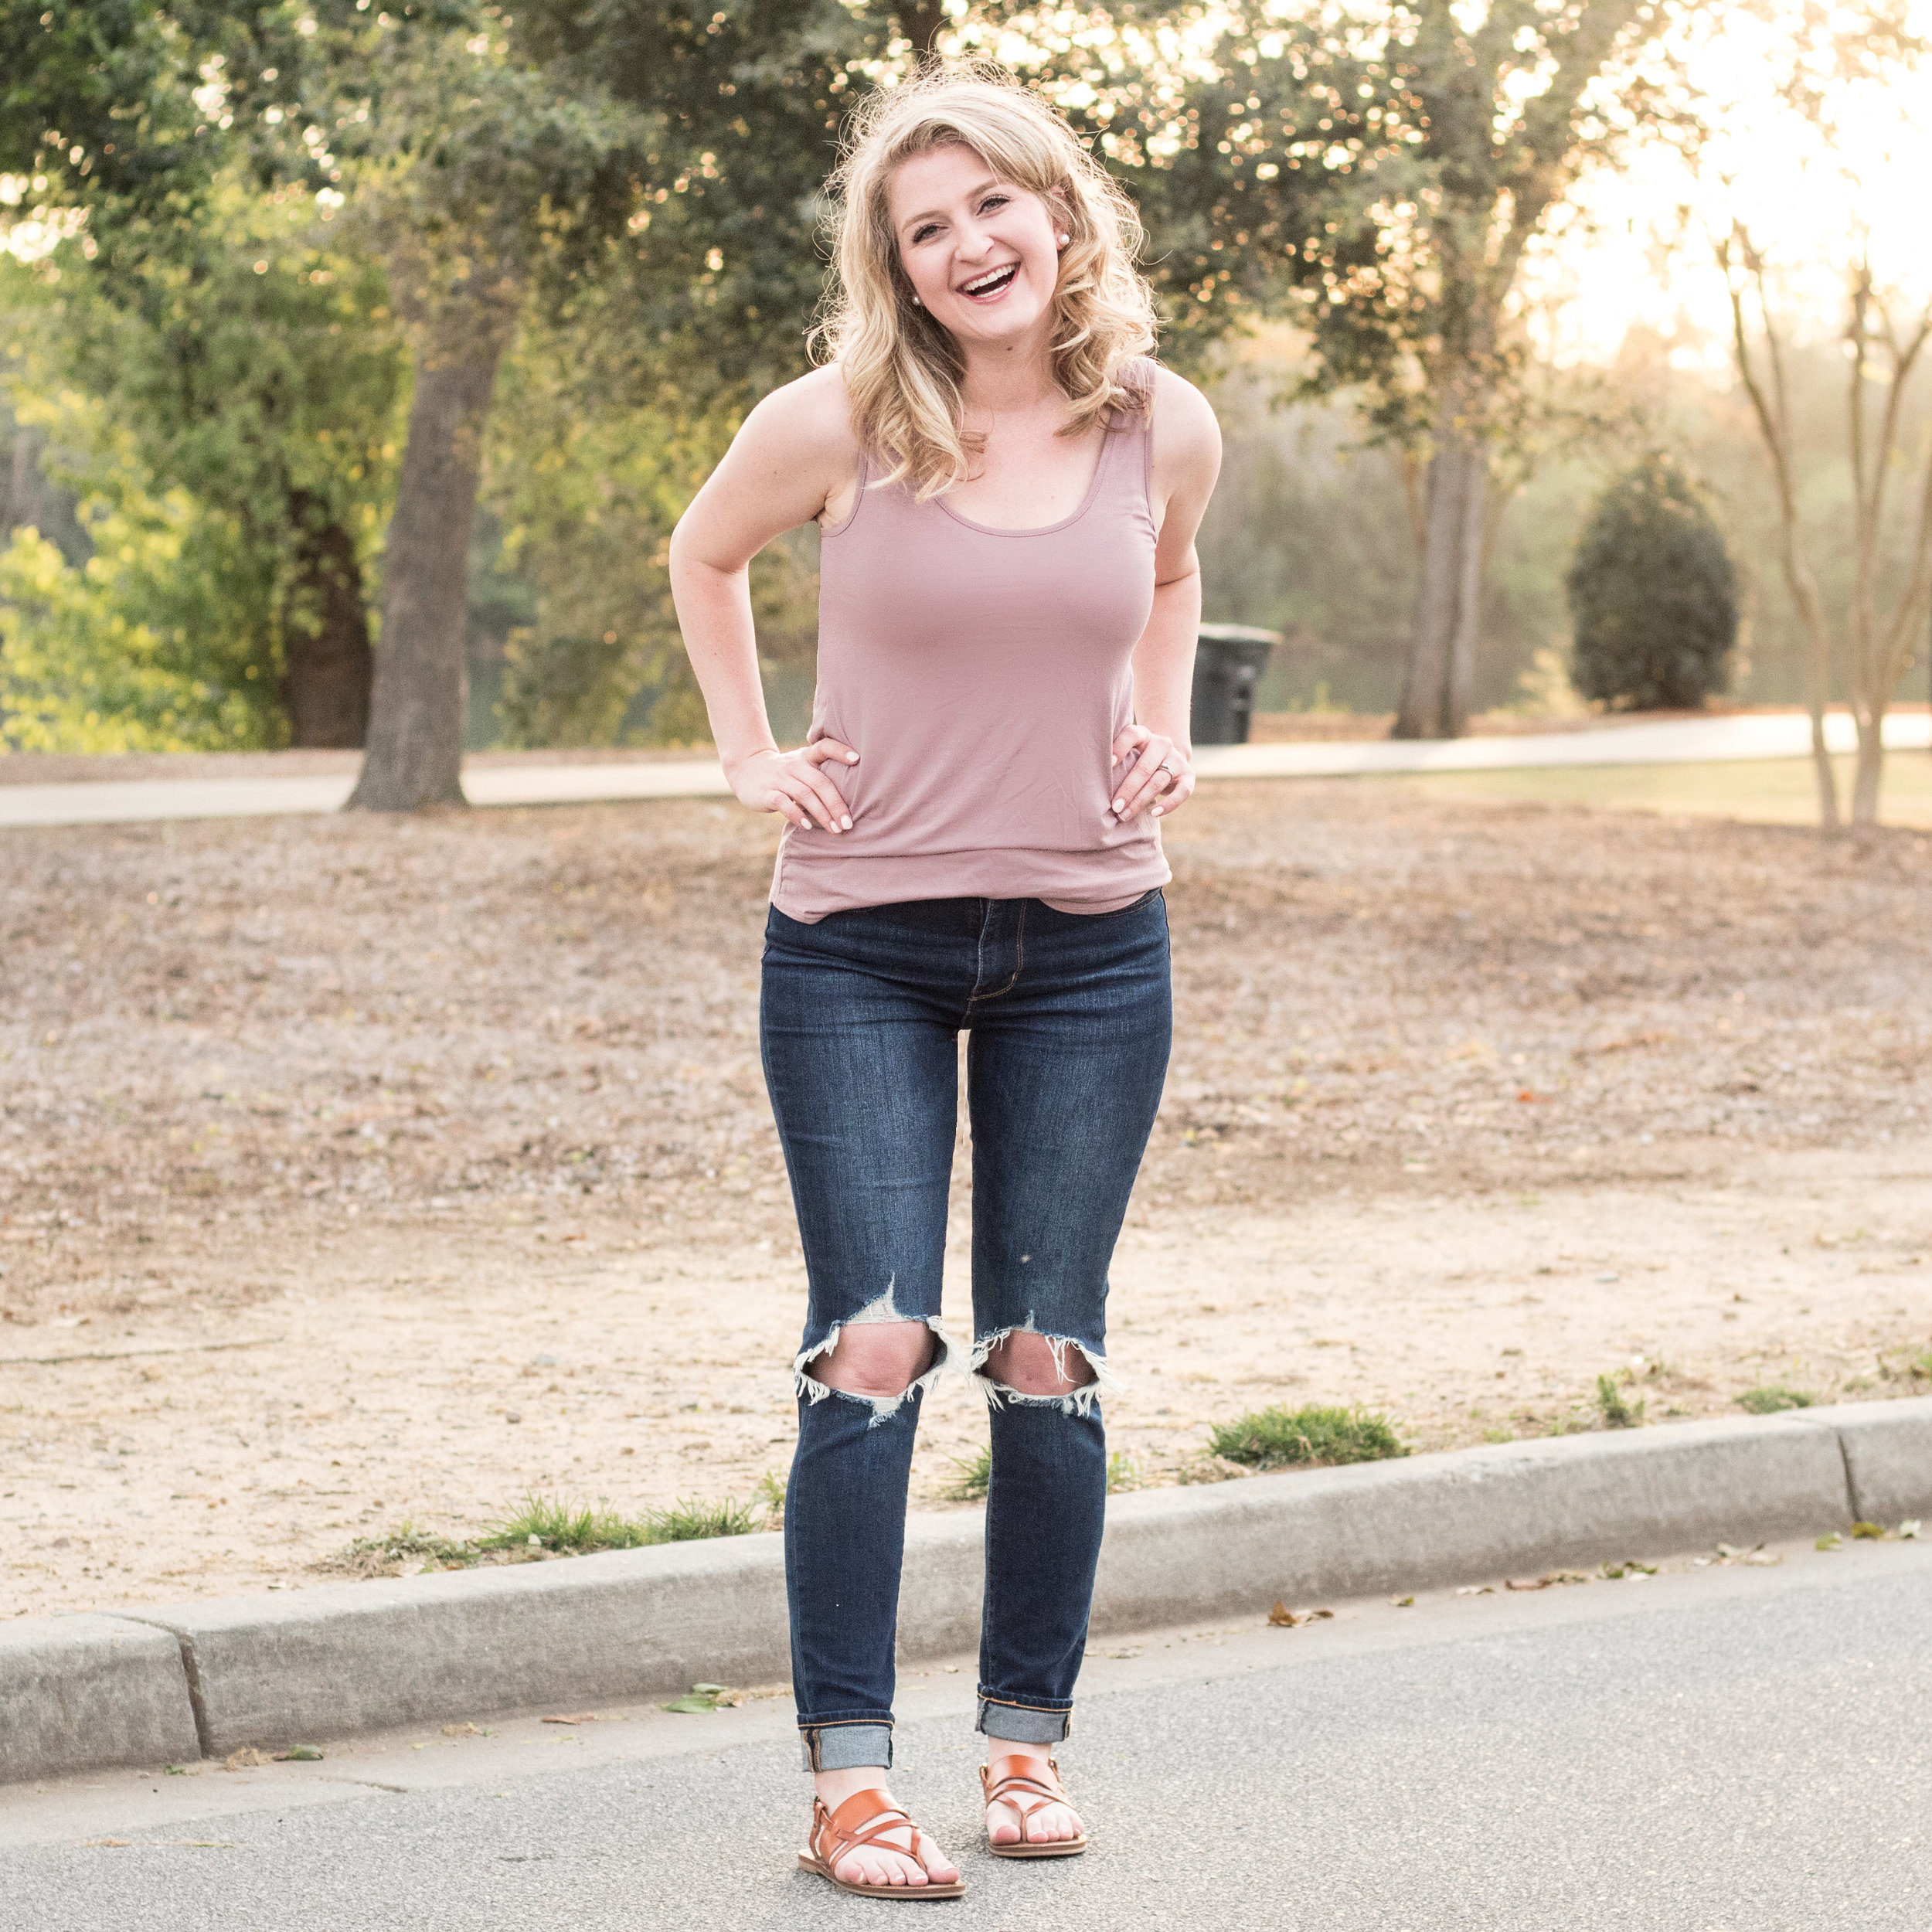 Jeans with pink top | Ademurelife Fashion Blog